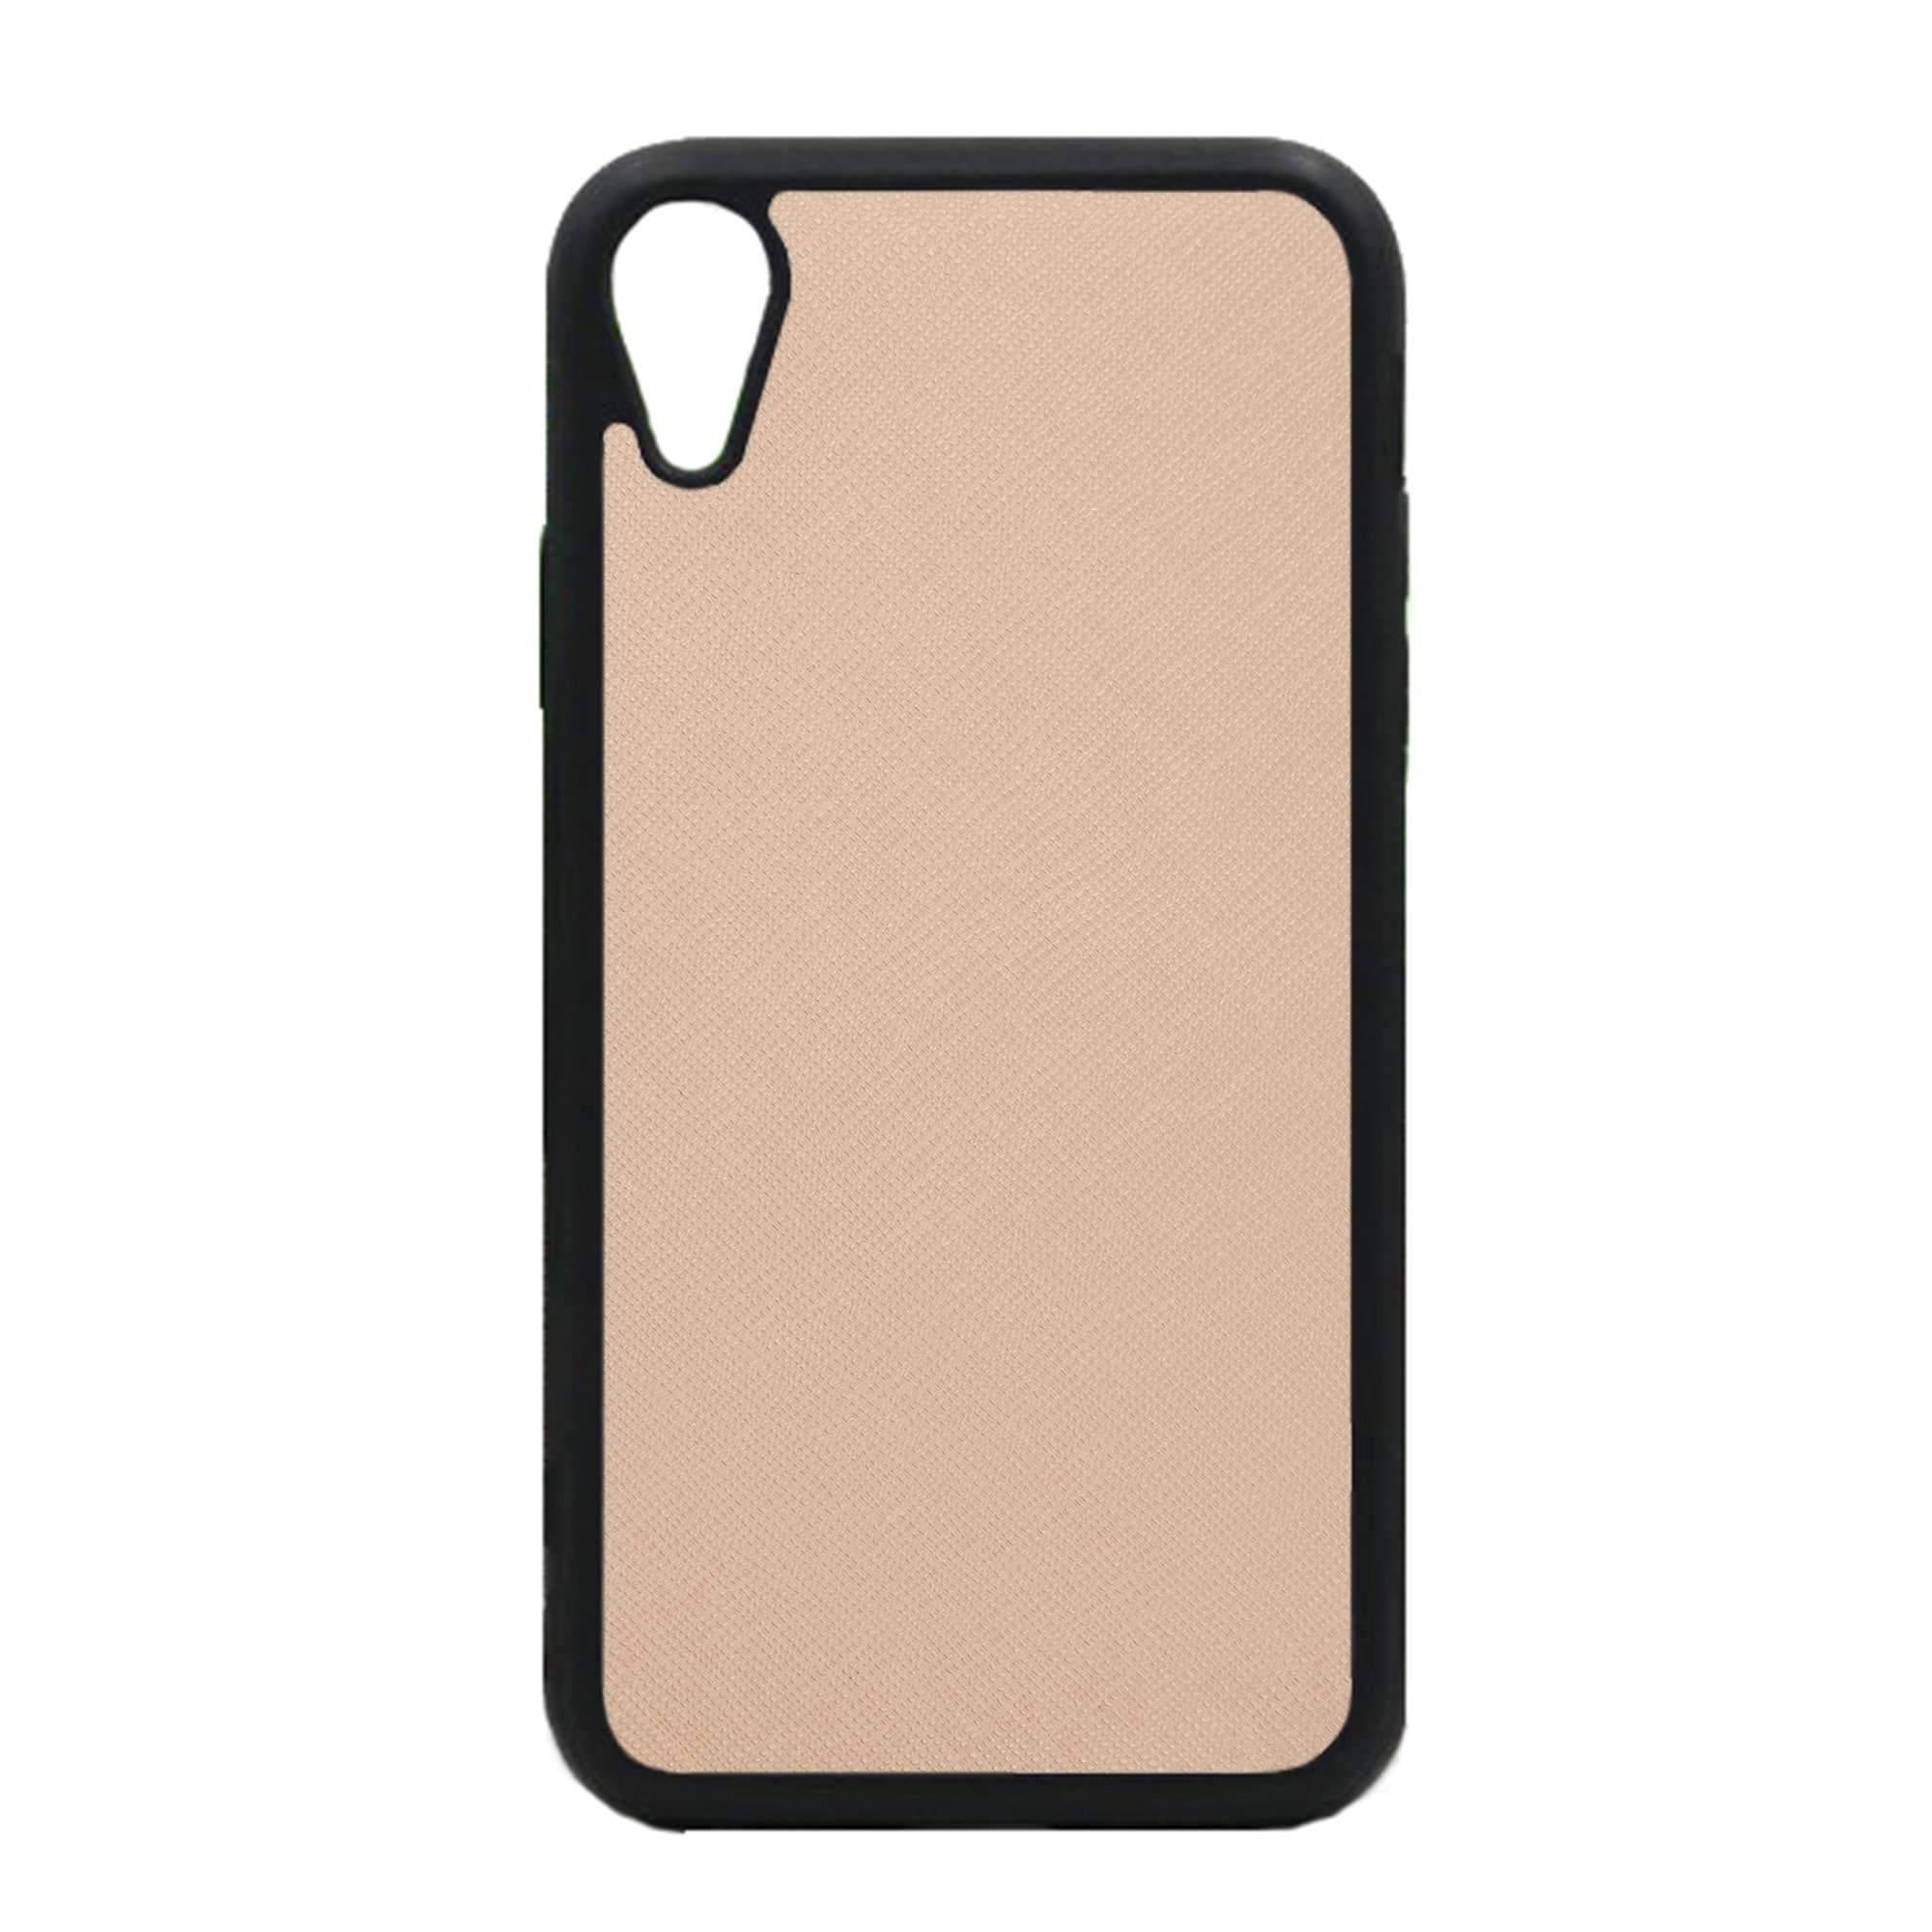 Personalise Iphone Xr Saffiano Leather Phone Case - Nude  Theimprint-7775